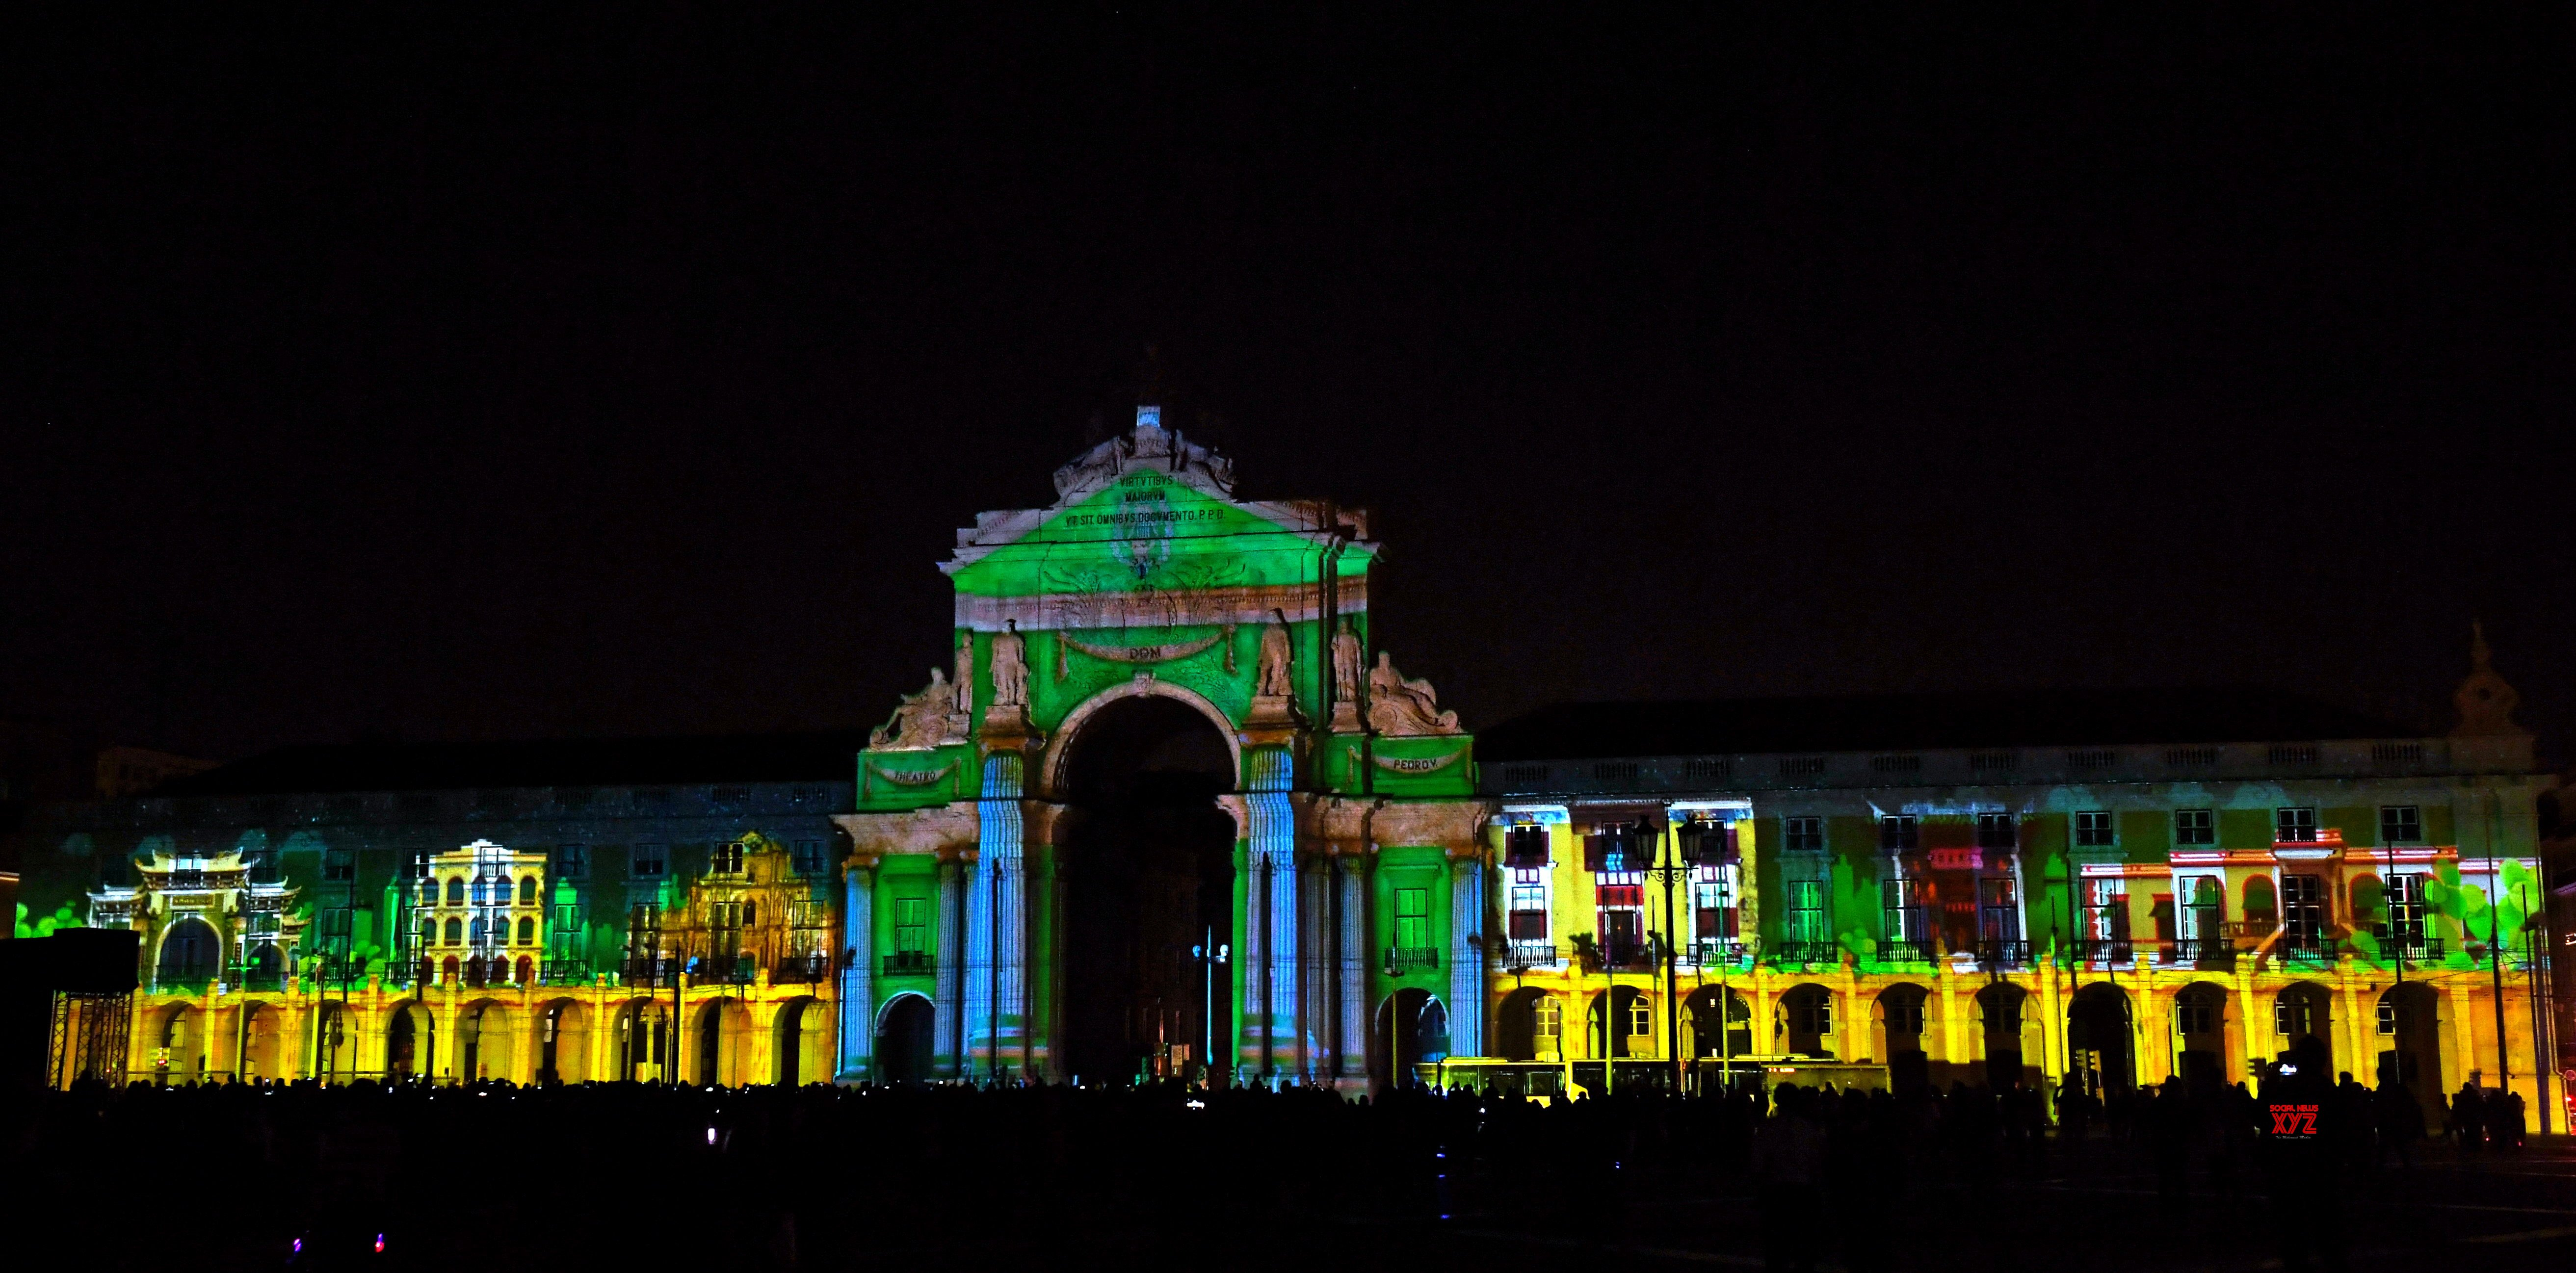 PORTUGAL - LISBON - CHINA'S MACAO - LIGHT SCULPTURE SHOW #Gallery